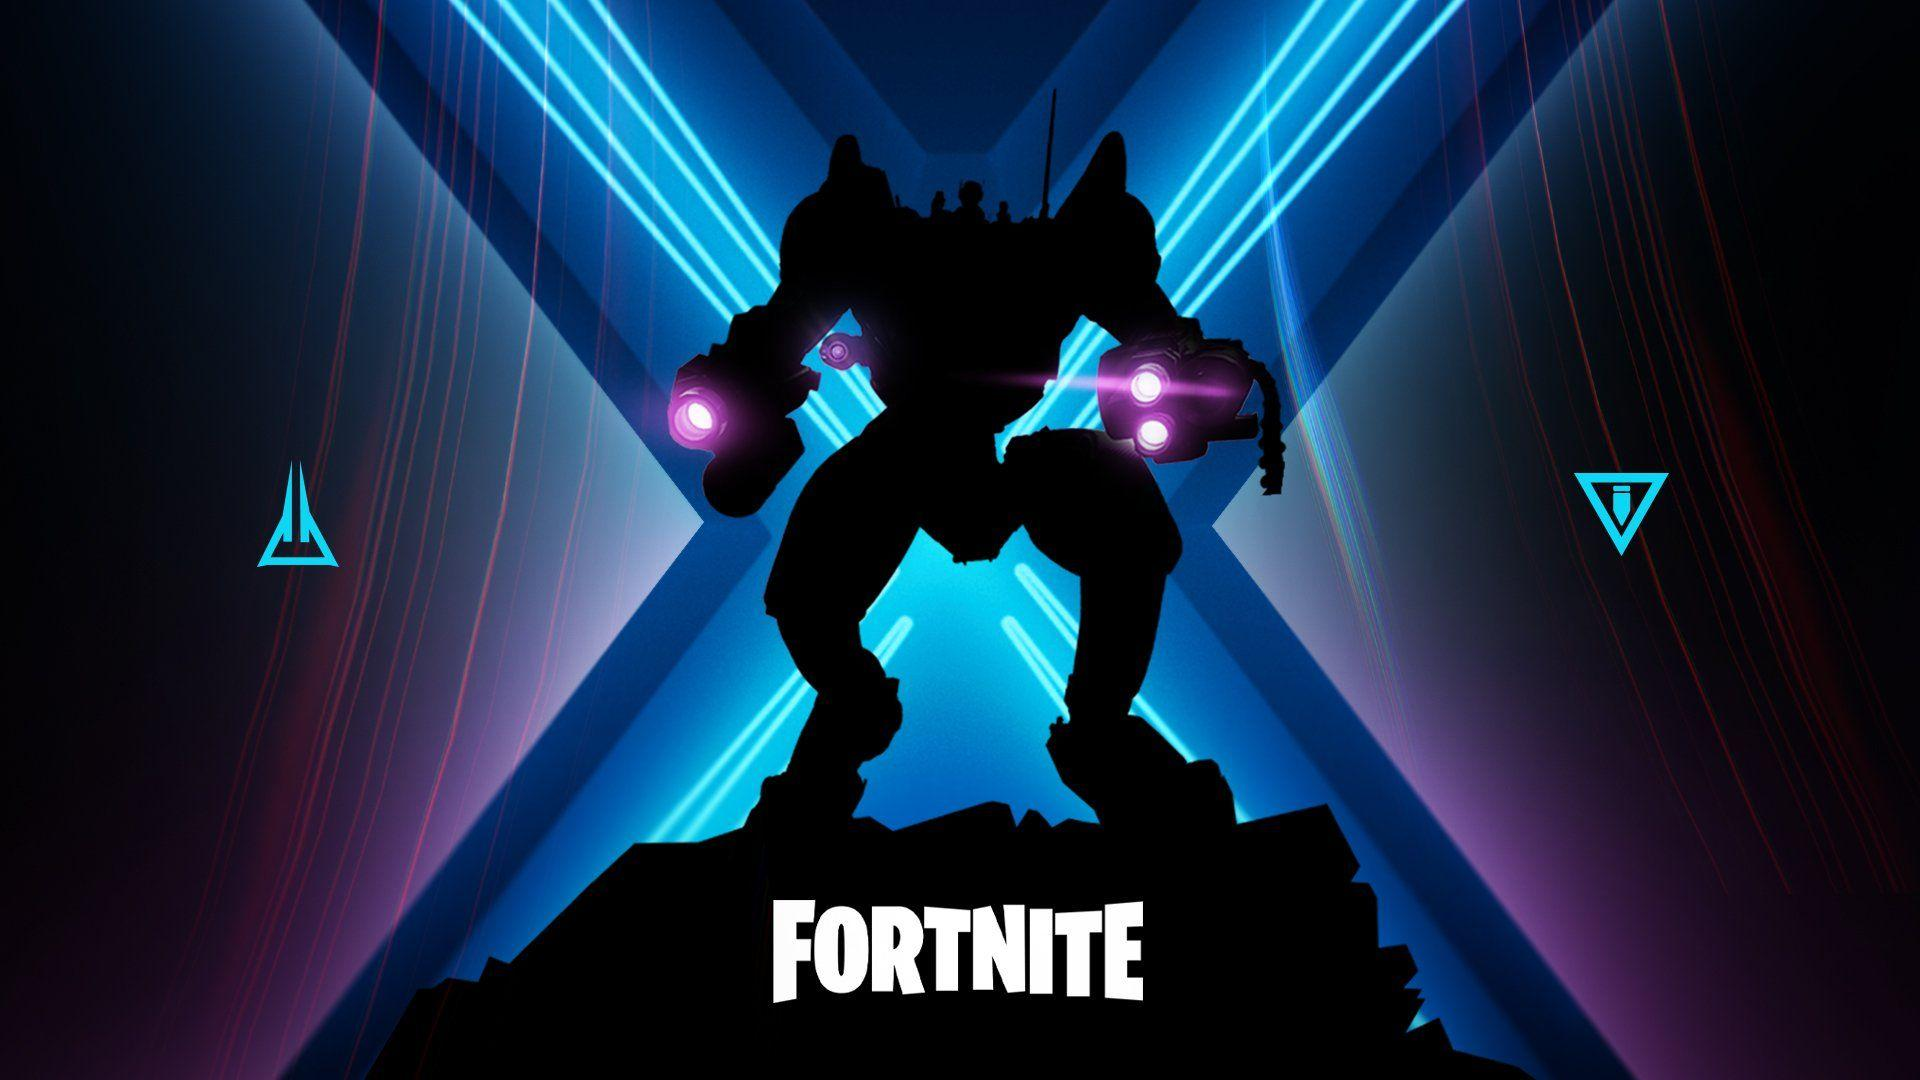 Fortnite Season 10 Wallpapers Wallpaper Cave